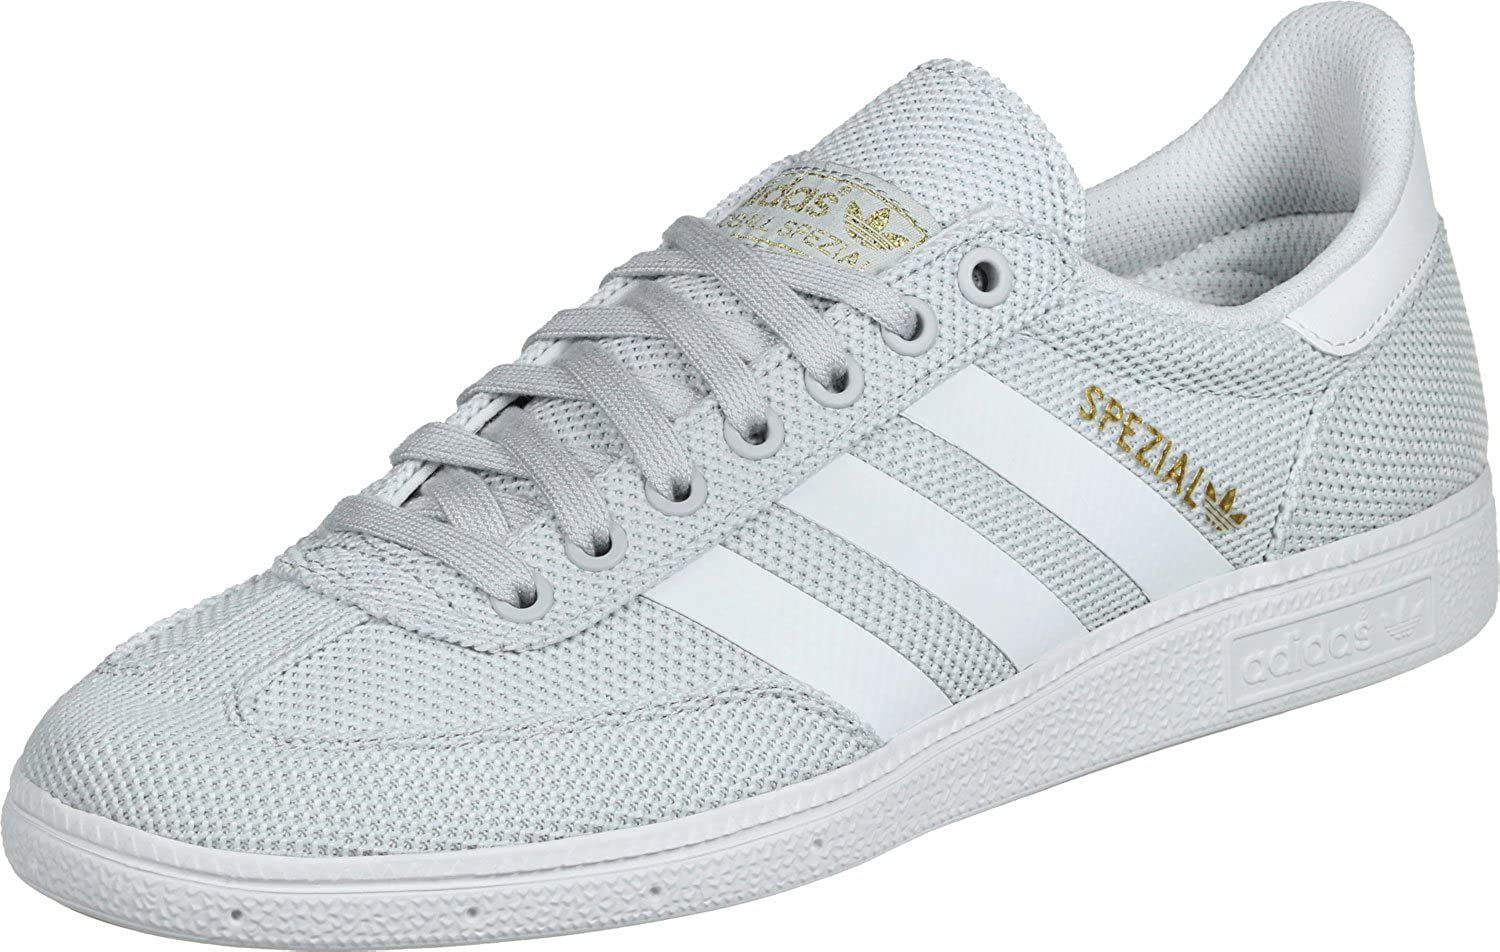 hot new products outlet boutique coupon code adidas Shoes - Spezial Weave grey/white/gold size: 44 2/3 ...